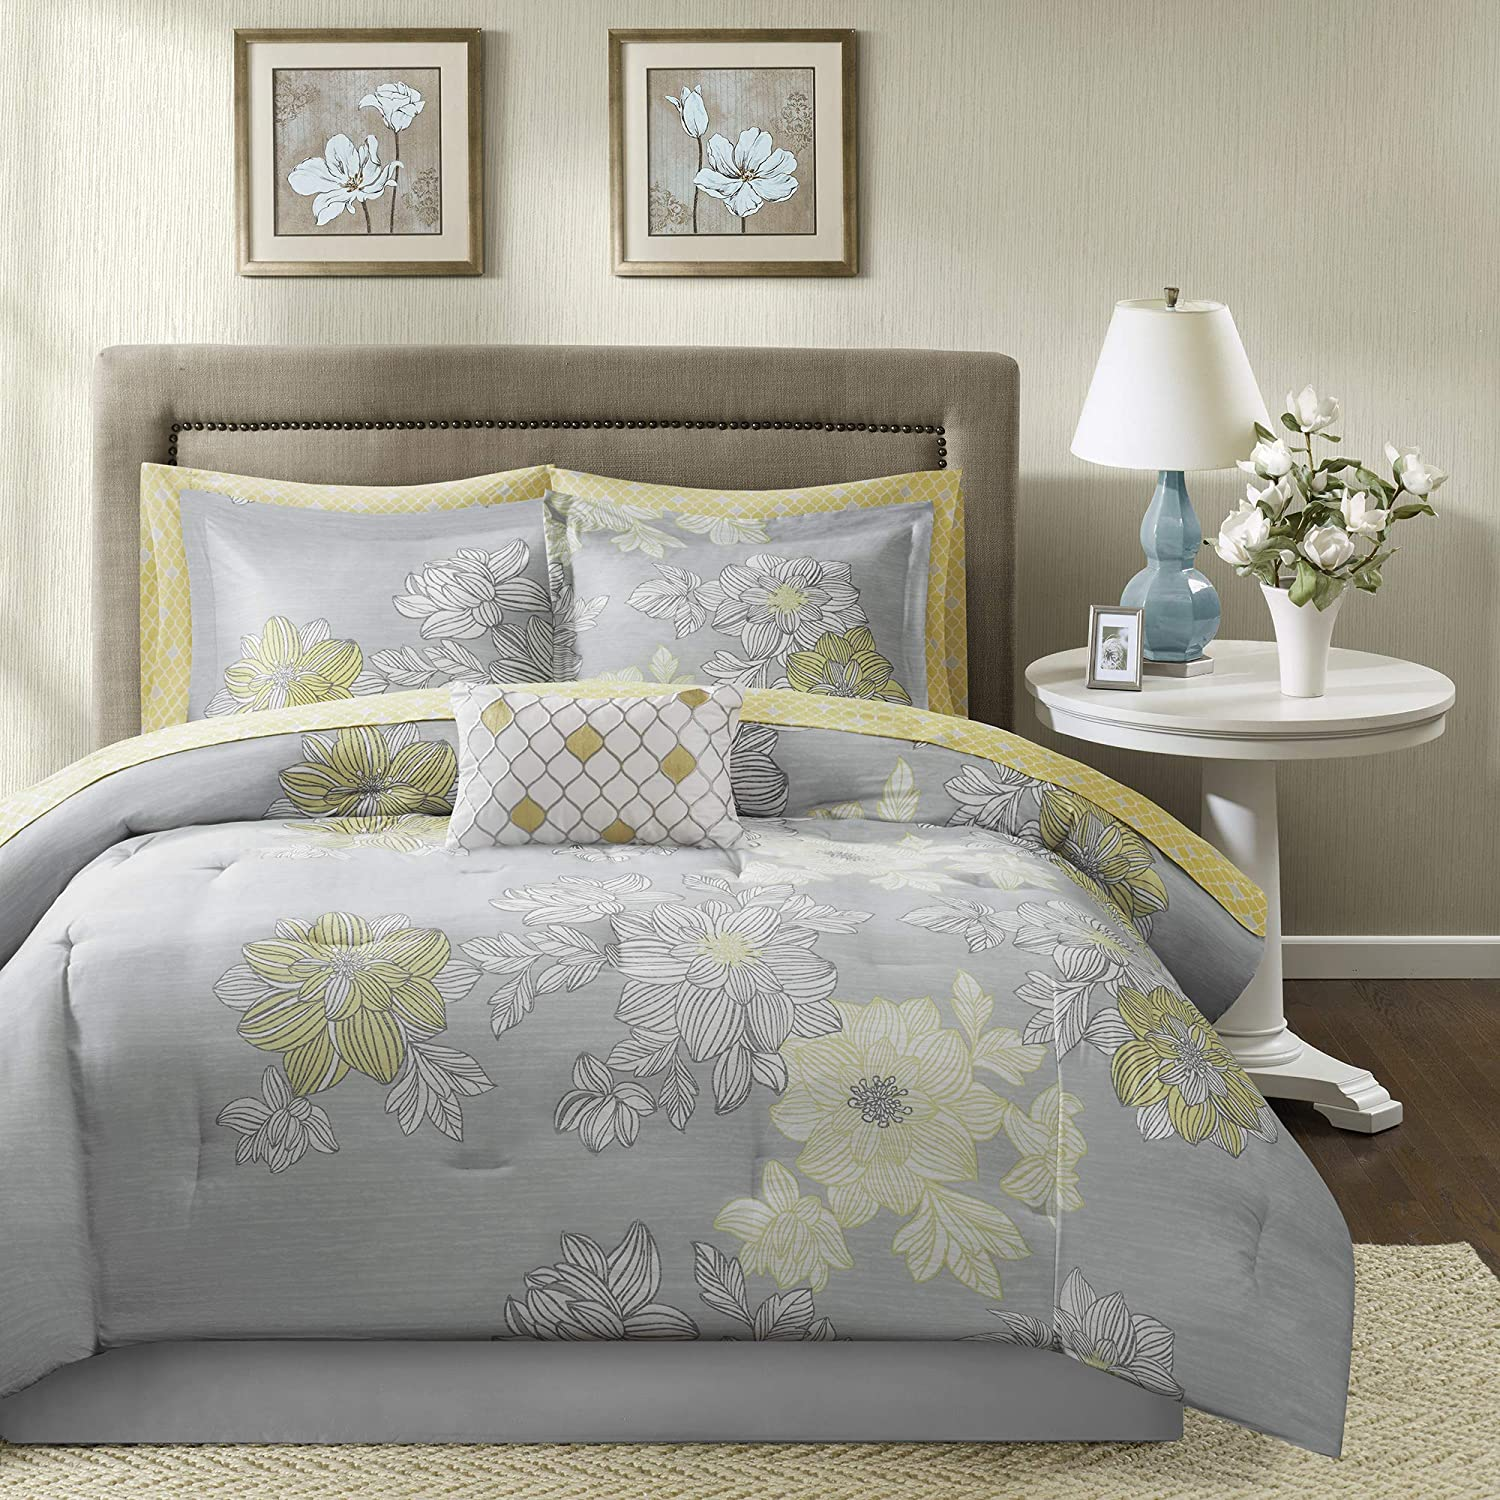 "Madison Park Avalon Comforter (Set), Queen(90""x90""), Floral Grey"